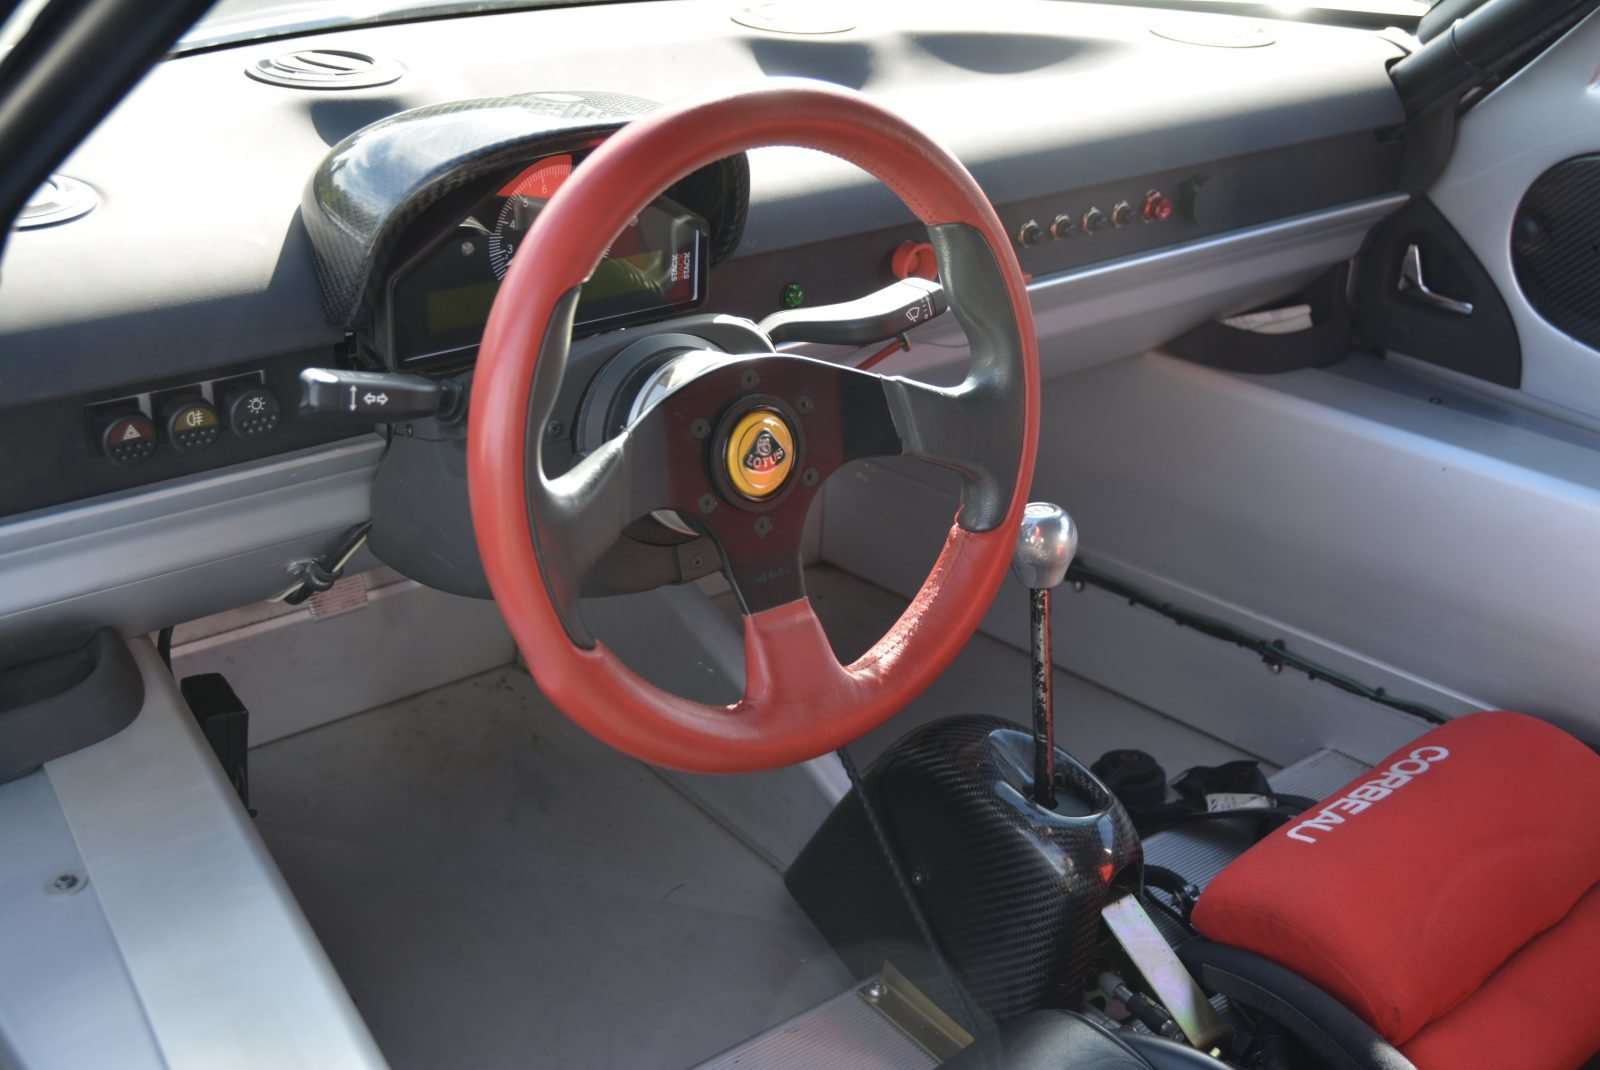 2000 Lotus Motorsport Elise Coupe Rare 1 of 12 Racer  $obo For Sale (picture 5 of 6)